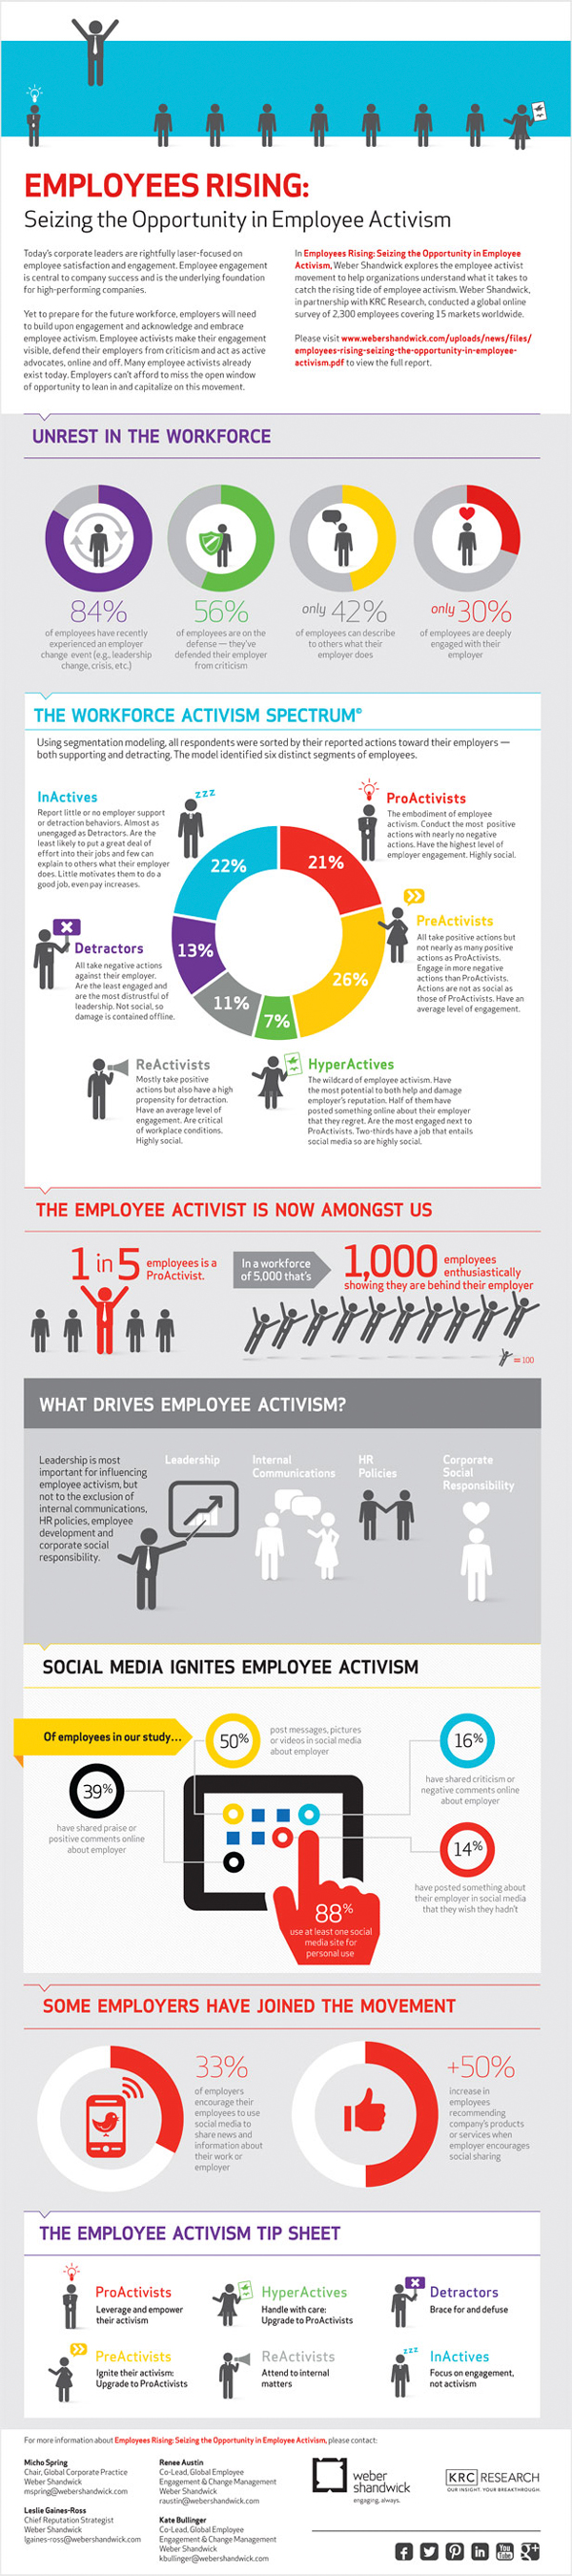 Employees Brand Activism Infographic